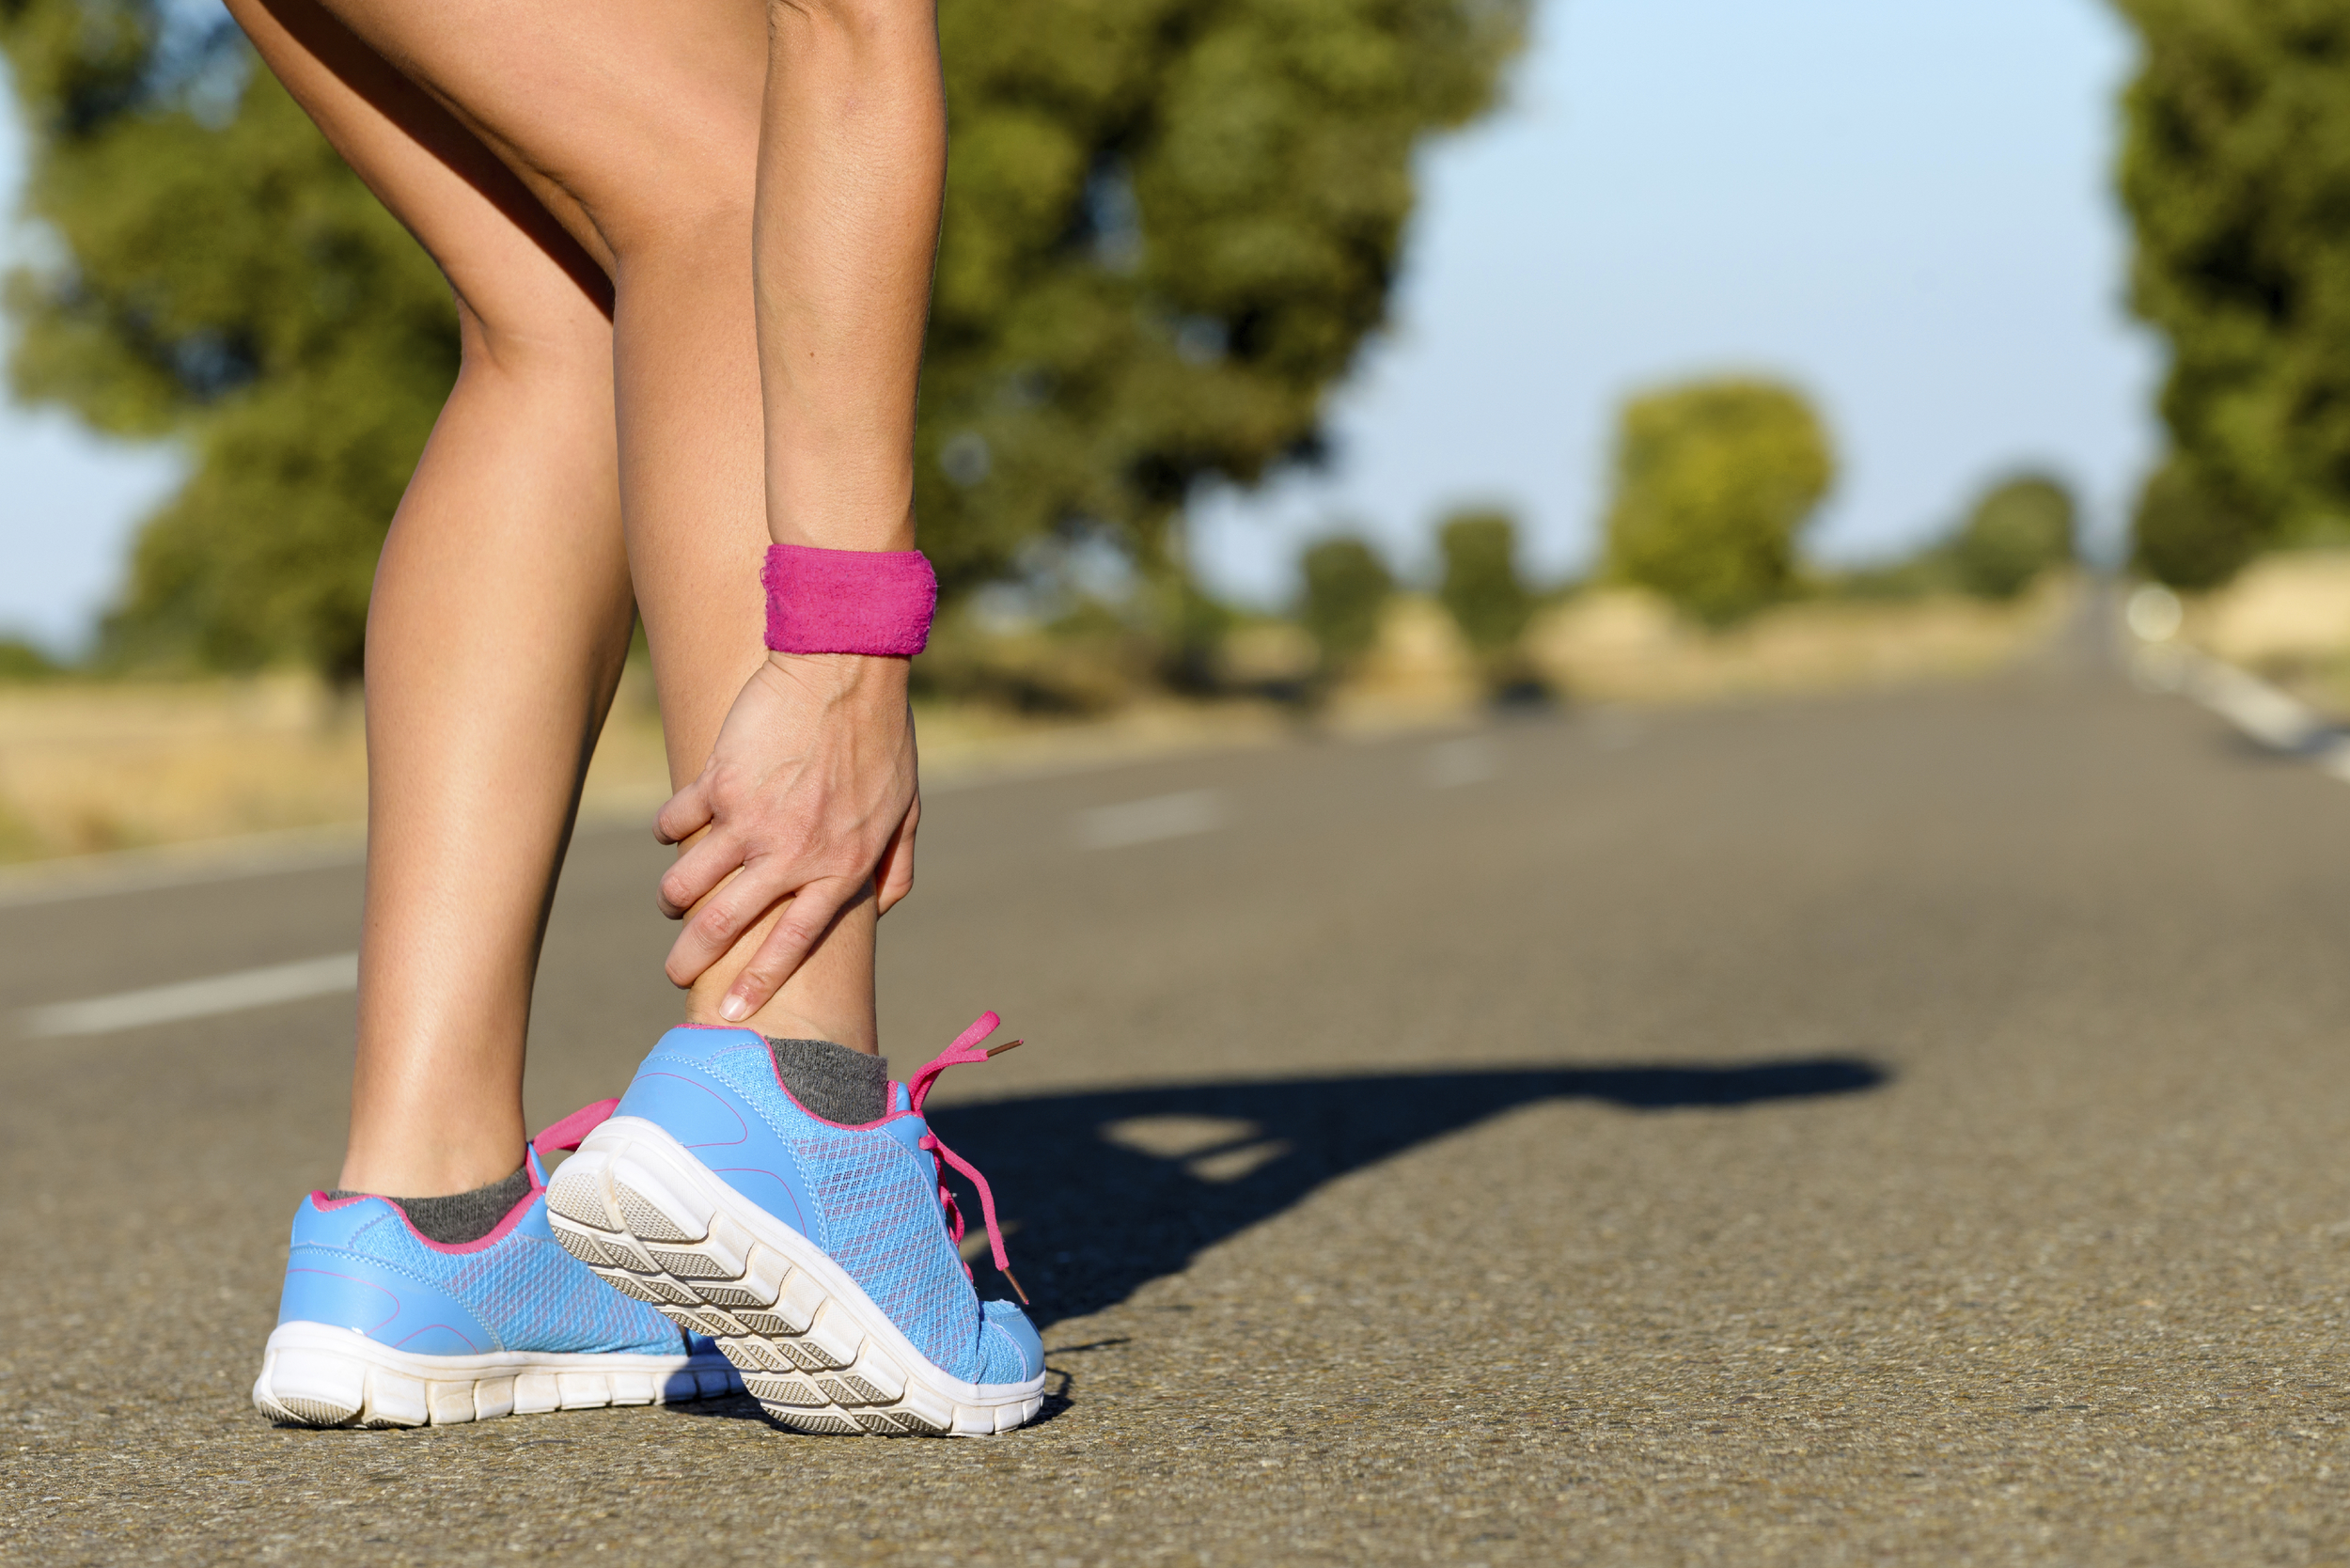 An ankle injury could be a fracture, sprain, strain, or tendinitis